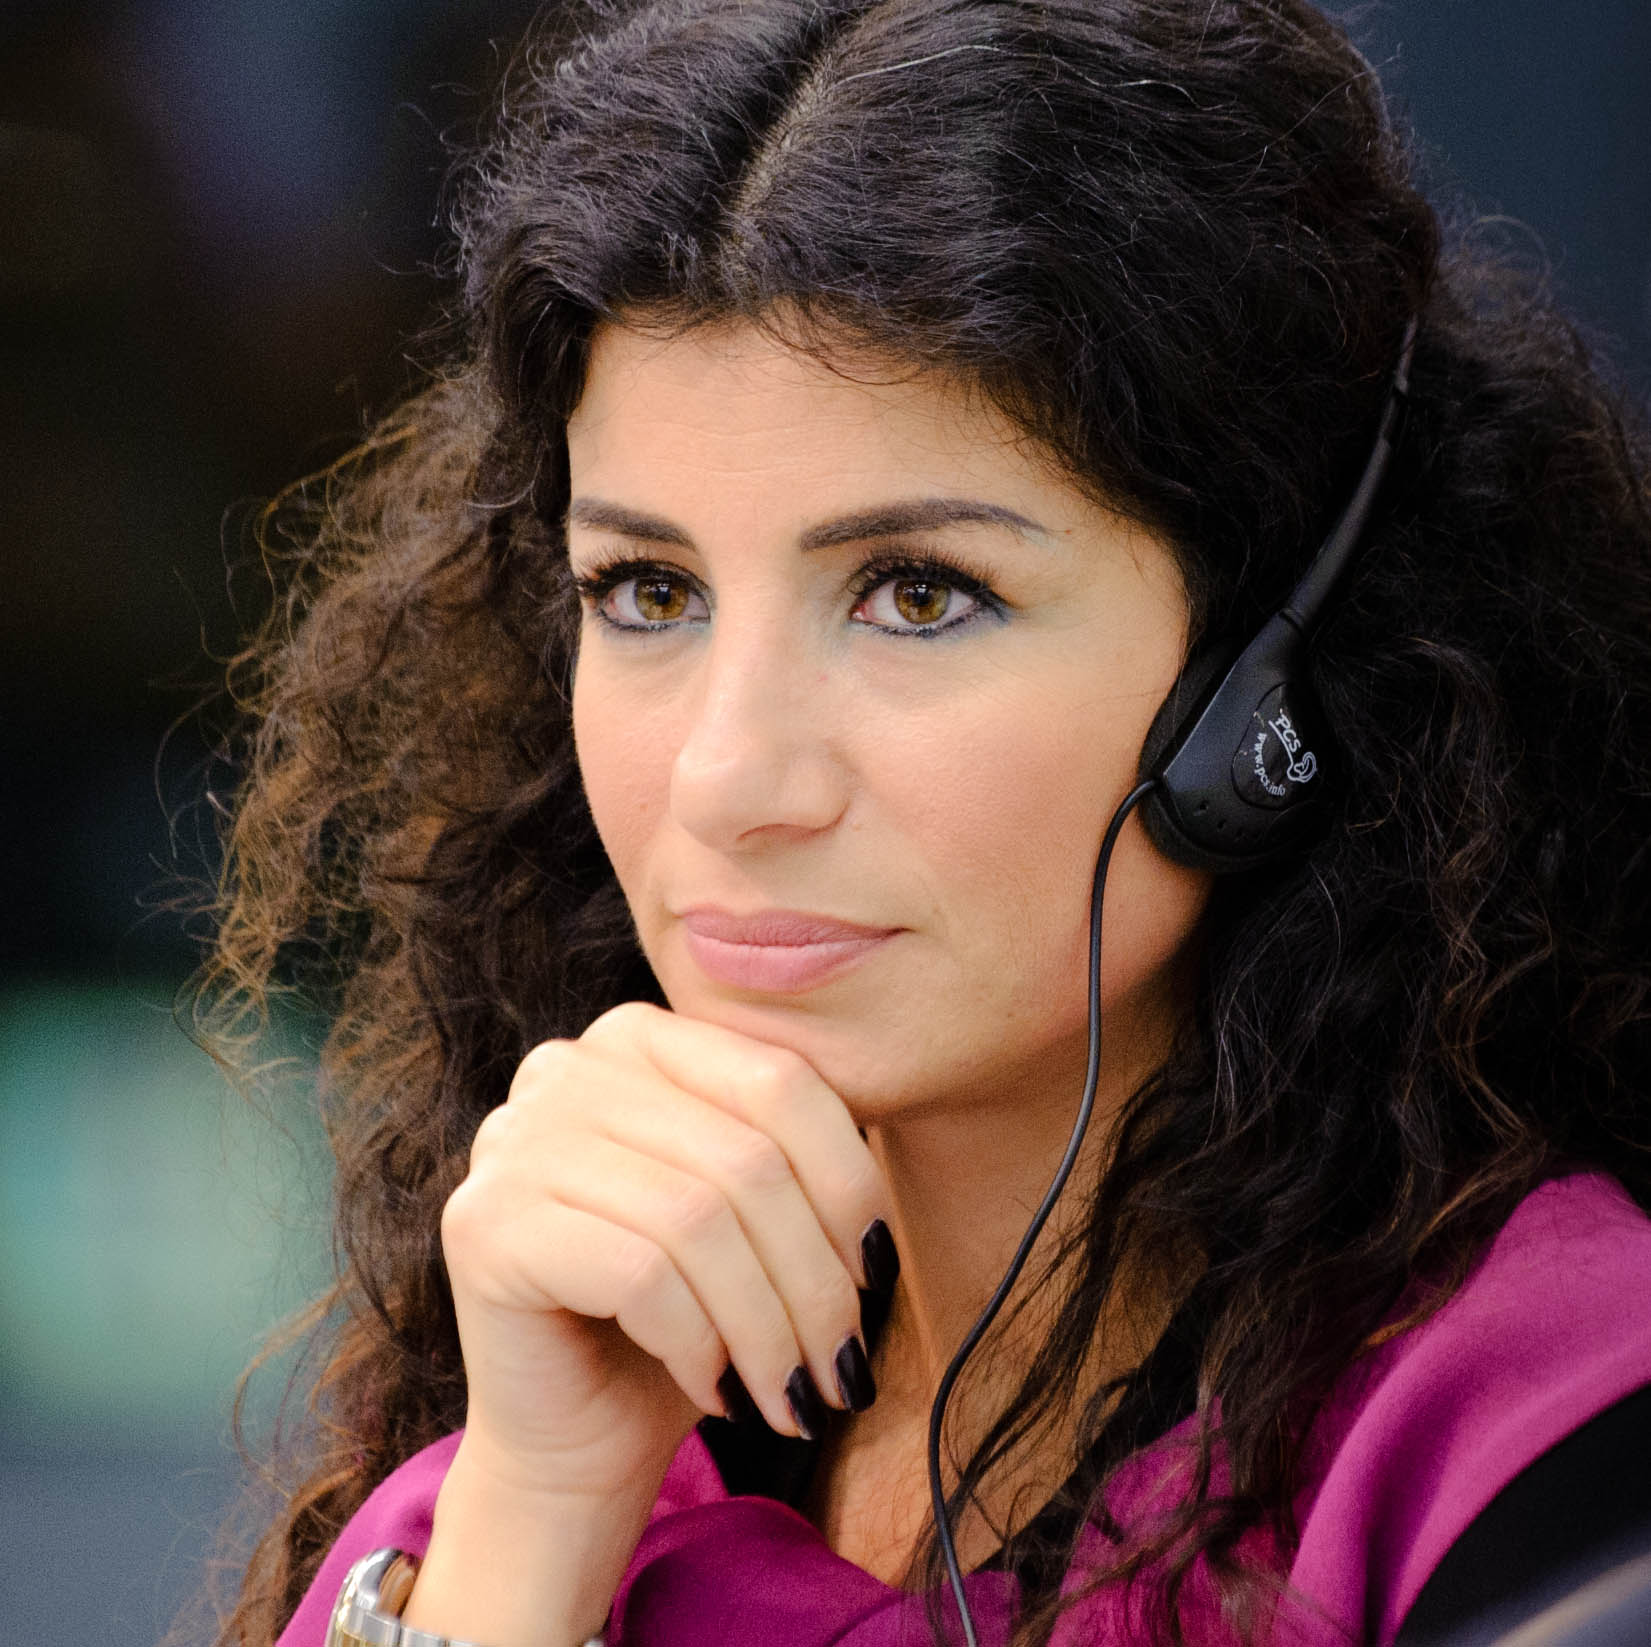 Joumana Haddad. By Heinrich Böll Stiftung from Berlin, Deutschland  [CC BY-SA 2.0], via Wikimedia Commons